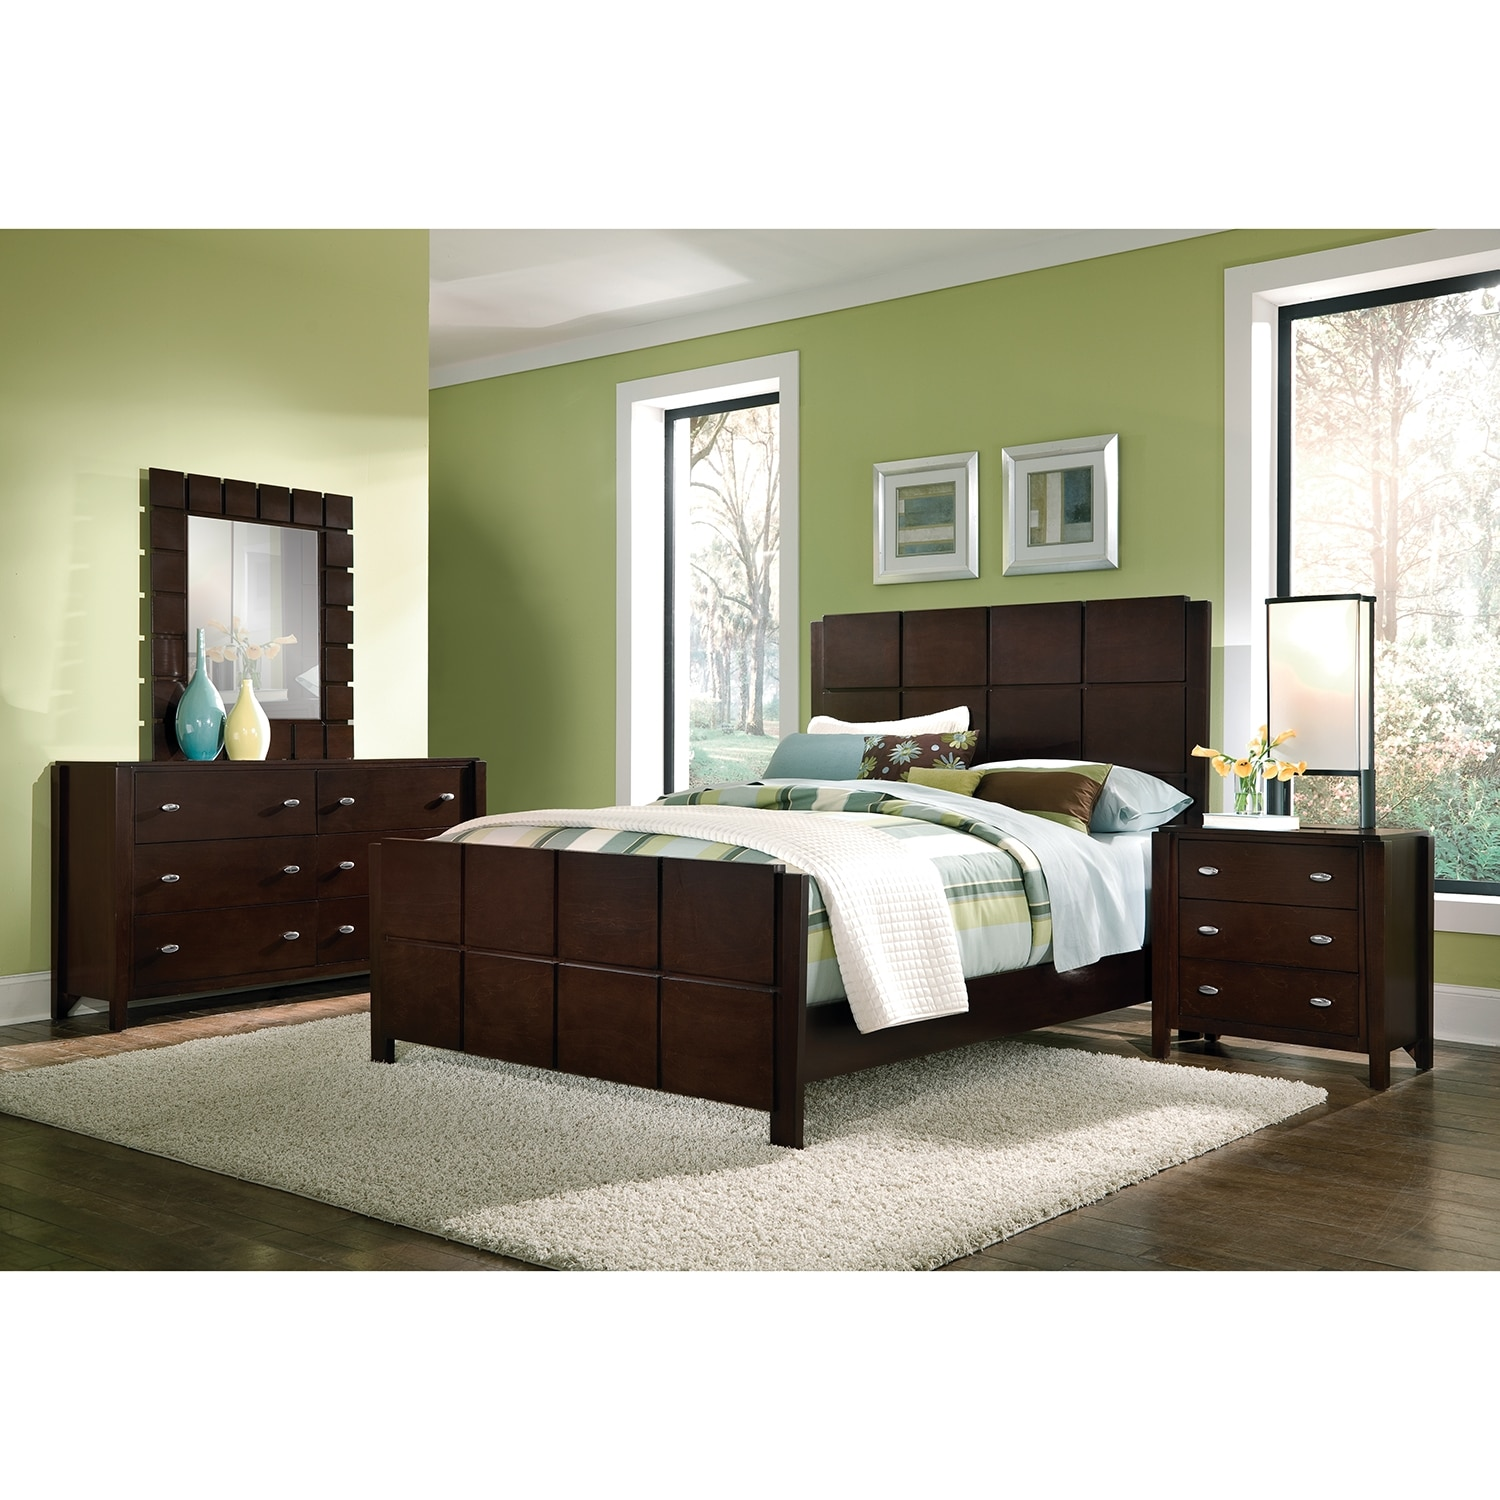 value city bedroom sets bedroom furniture value city furniture 17687